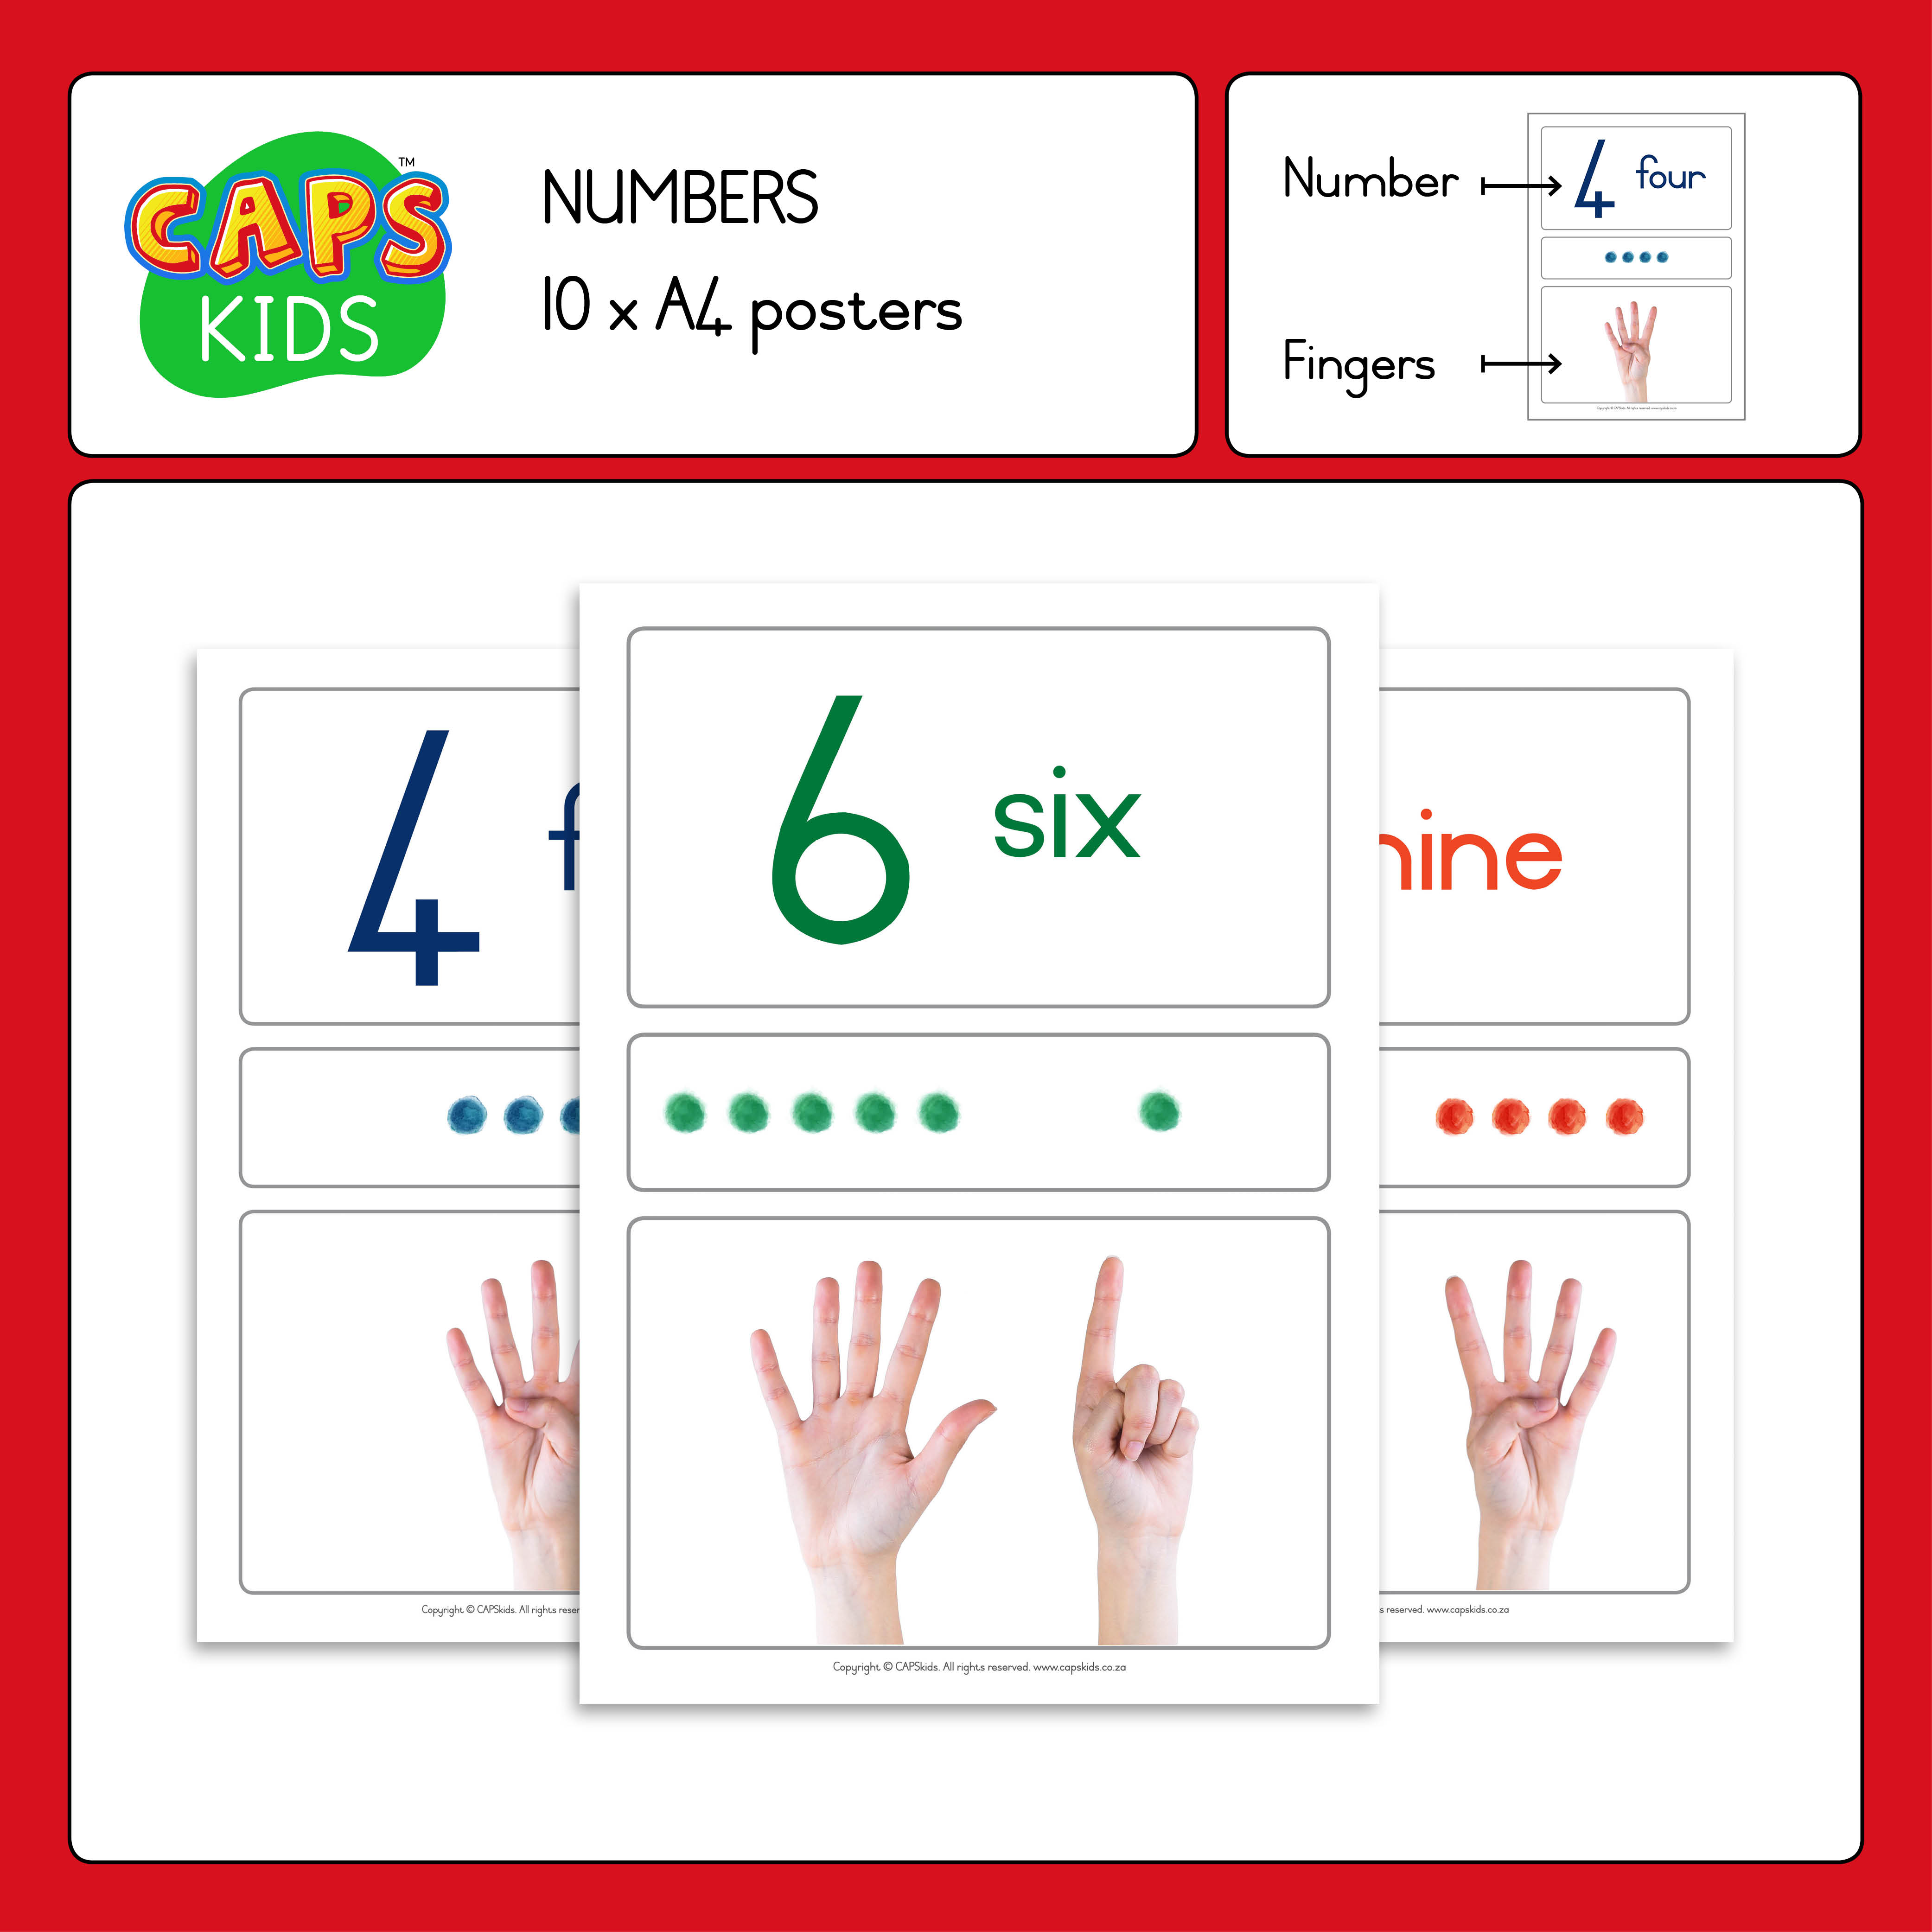 CAPSkids A4 Posters with English numbers